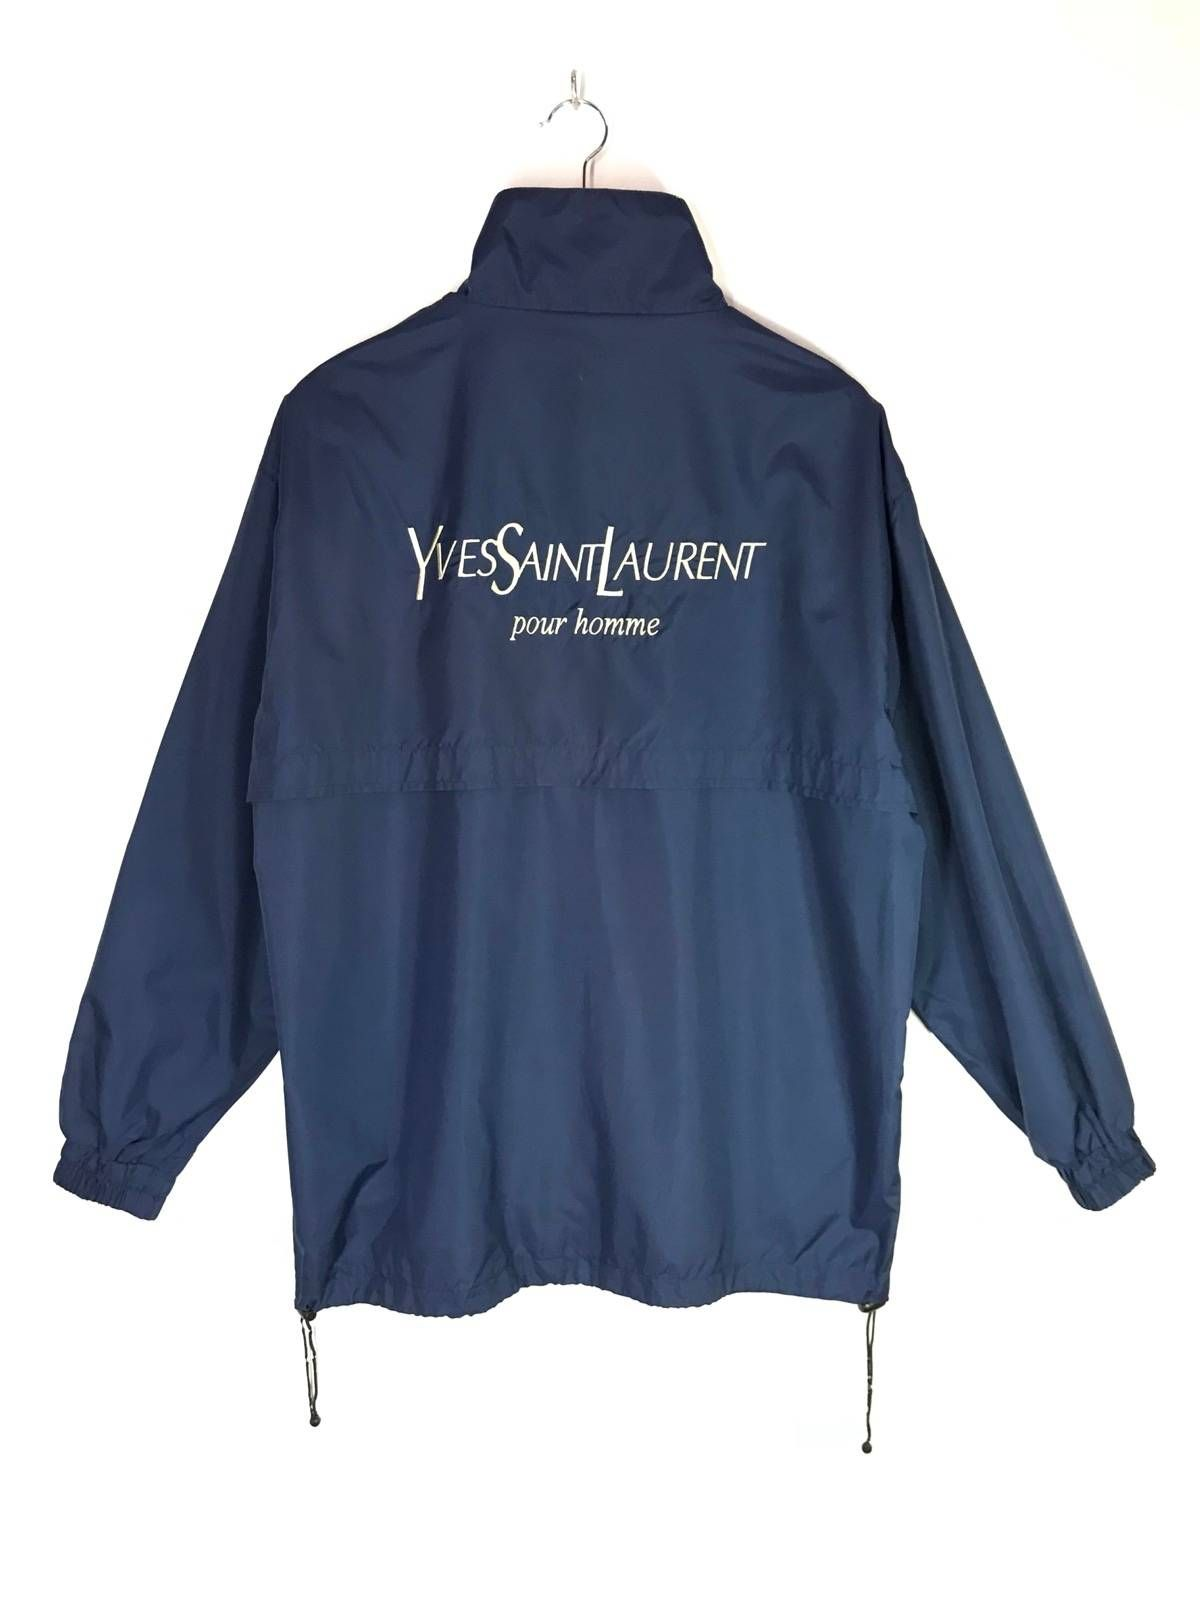 6aaff281b5c Searching for Vintage yves saint laurent ysl pour homme coach / windbreaker light  jacket? We've got Ysl Pour Homme outerwear starting at $250 and plenty of  ...